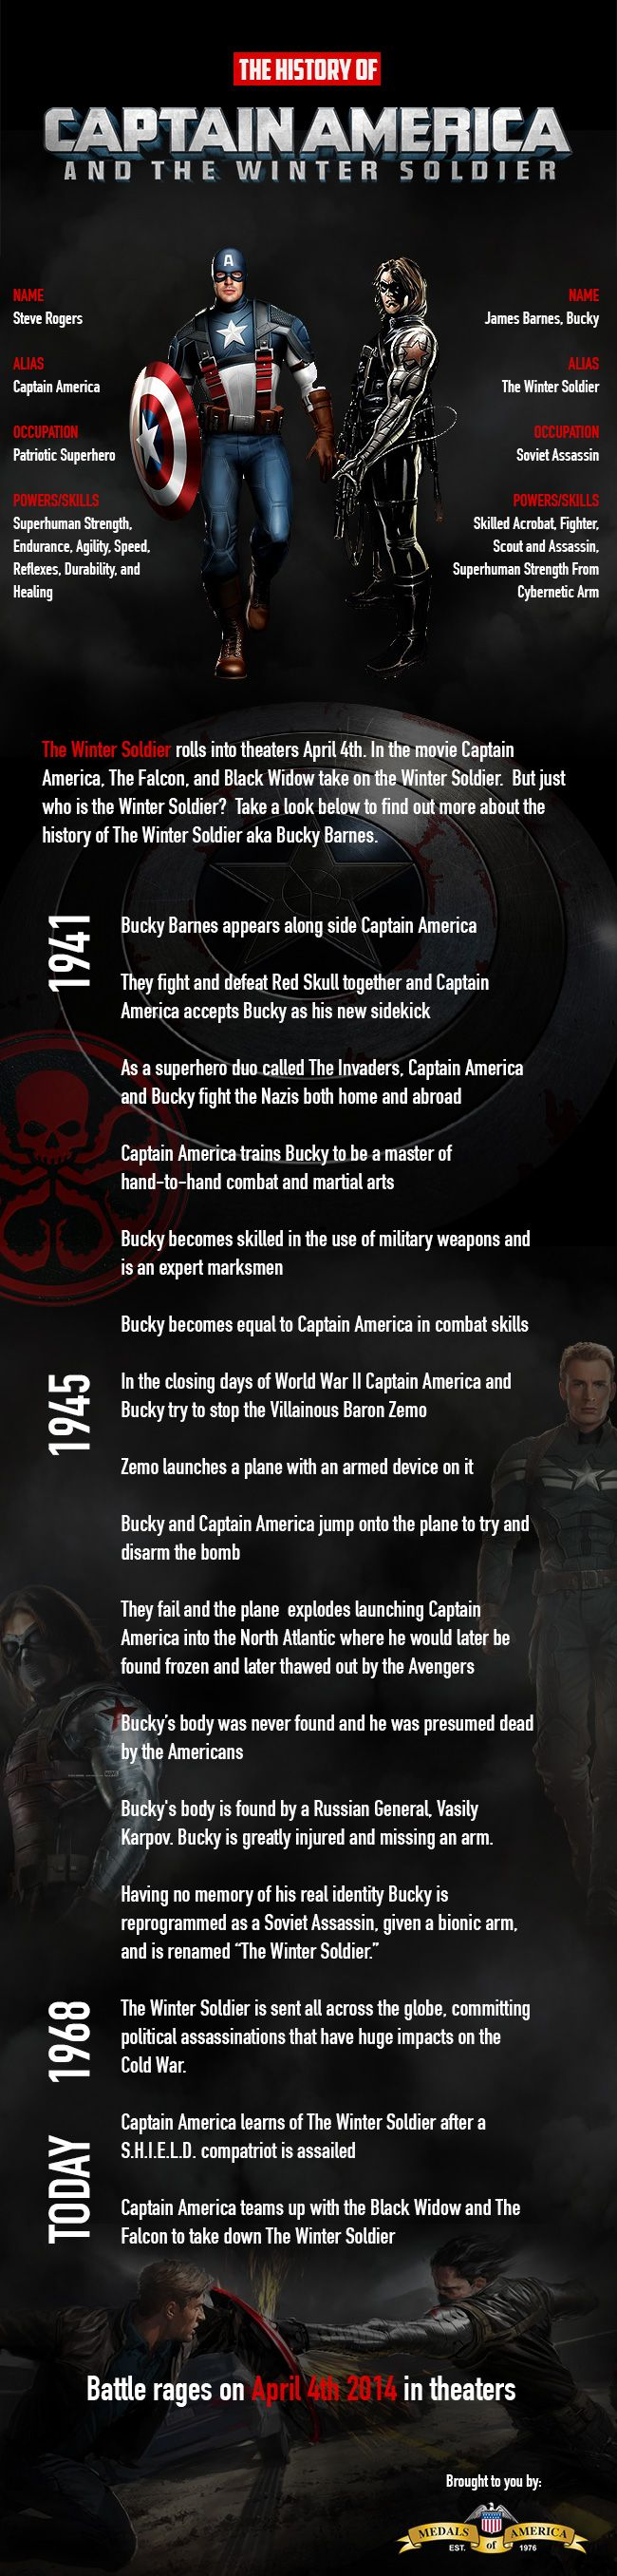 Cool infograph! Of course, the movies depicted scenarios differently because comics don't always translate well onto the big screen. You only have two hours to tell a story so you better tell it fast!